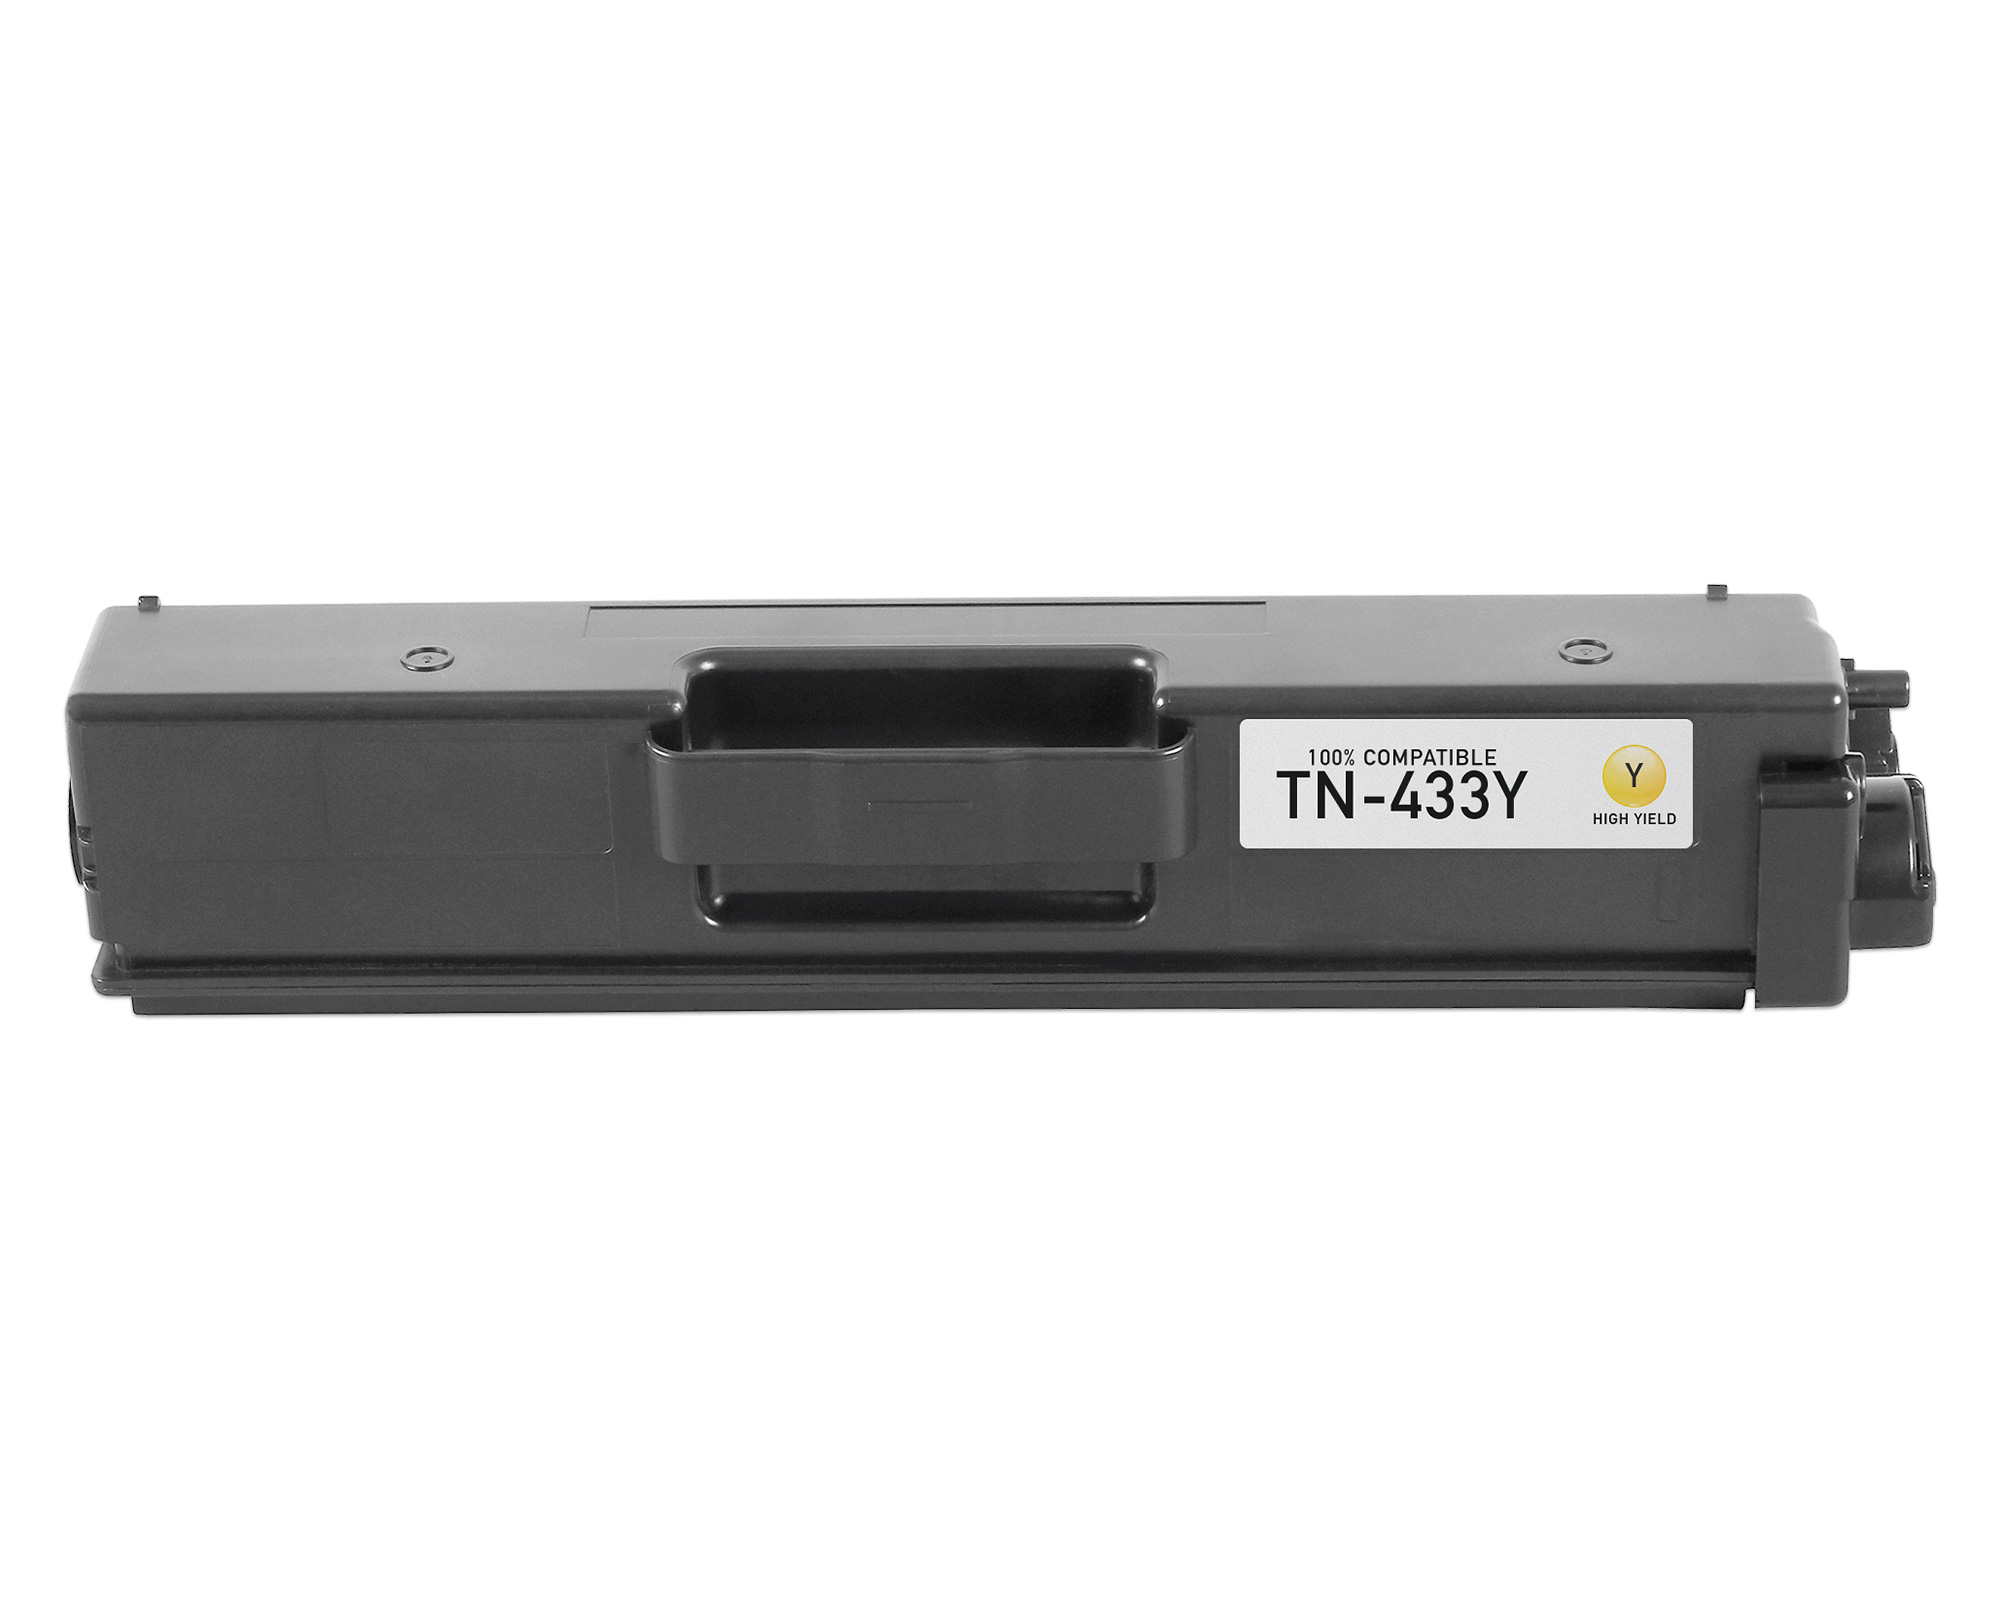 Brother MFC-L8900CDW Yellow Toner Cartridge - 4,000 Pages -  Generic Toner, Yellow-Toner-Cartridge-High-Yield-Brother-MFC-L890